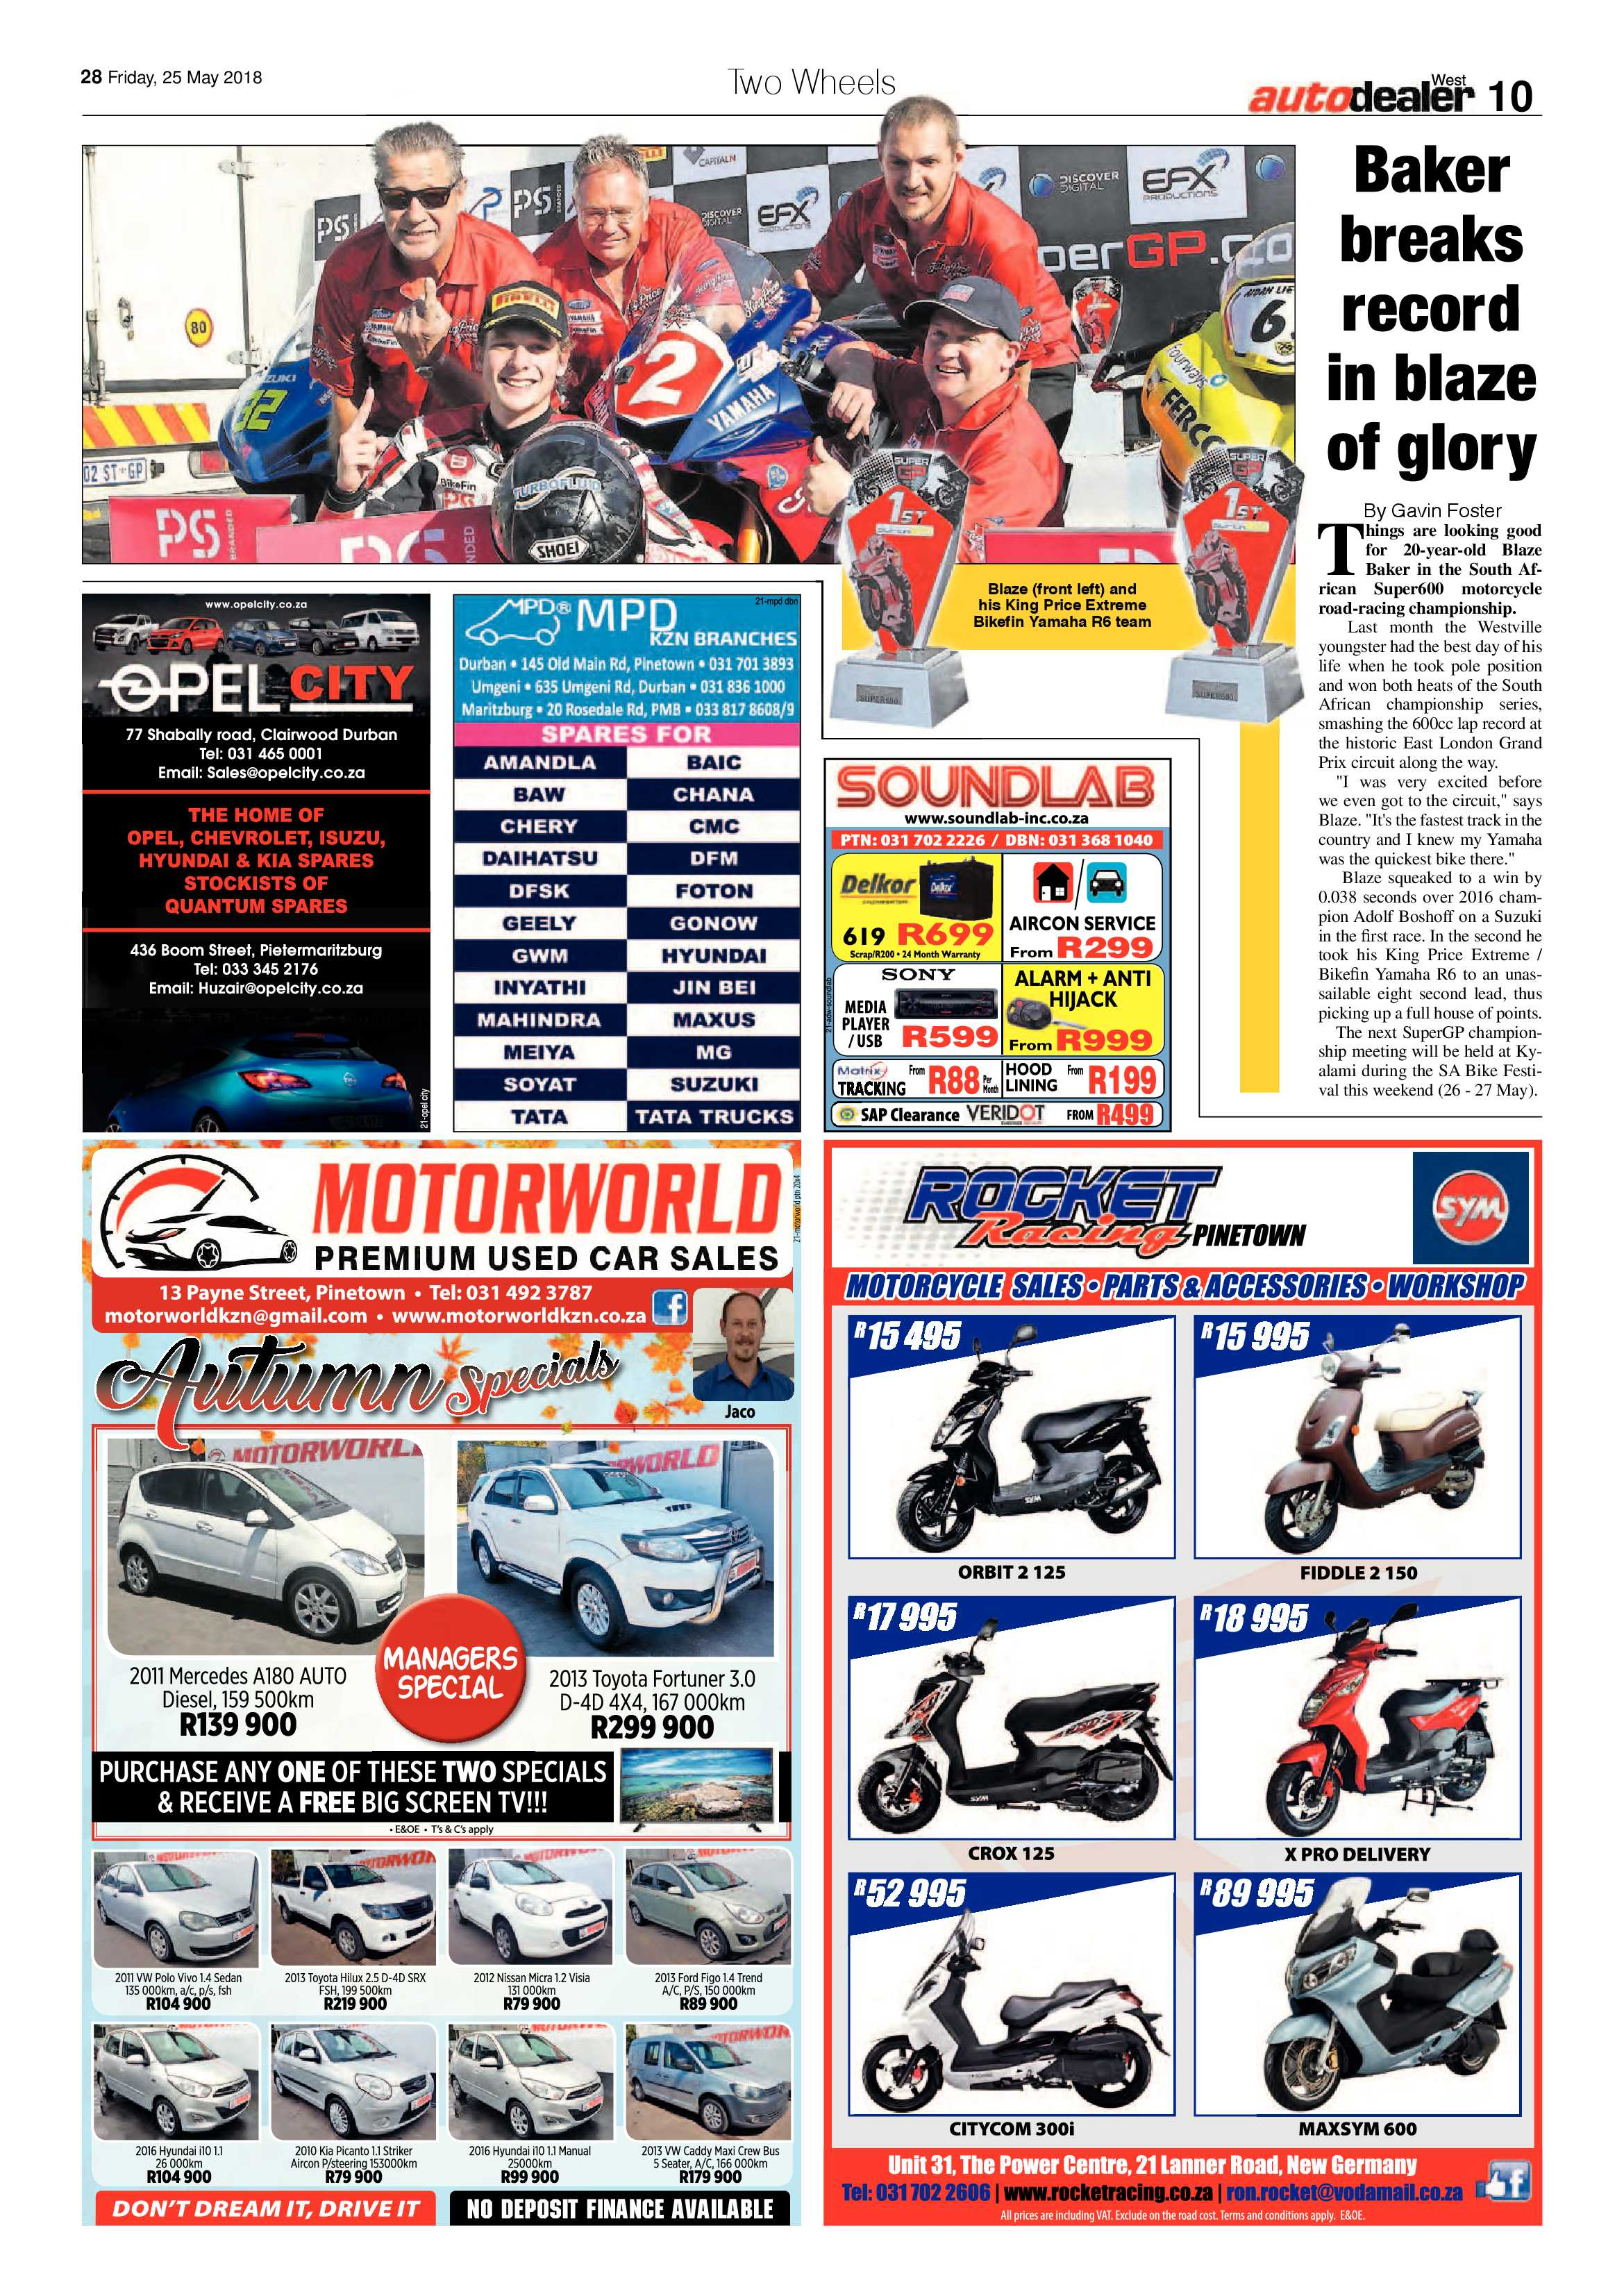 berea-mail-25-may-2018-epapers-page-28